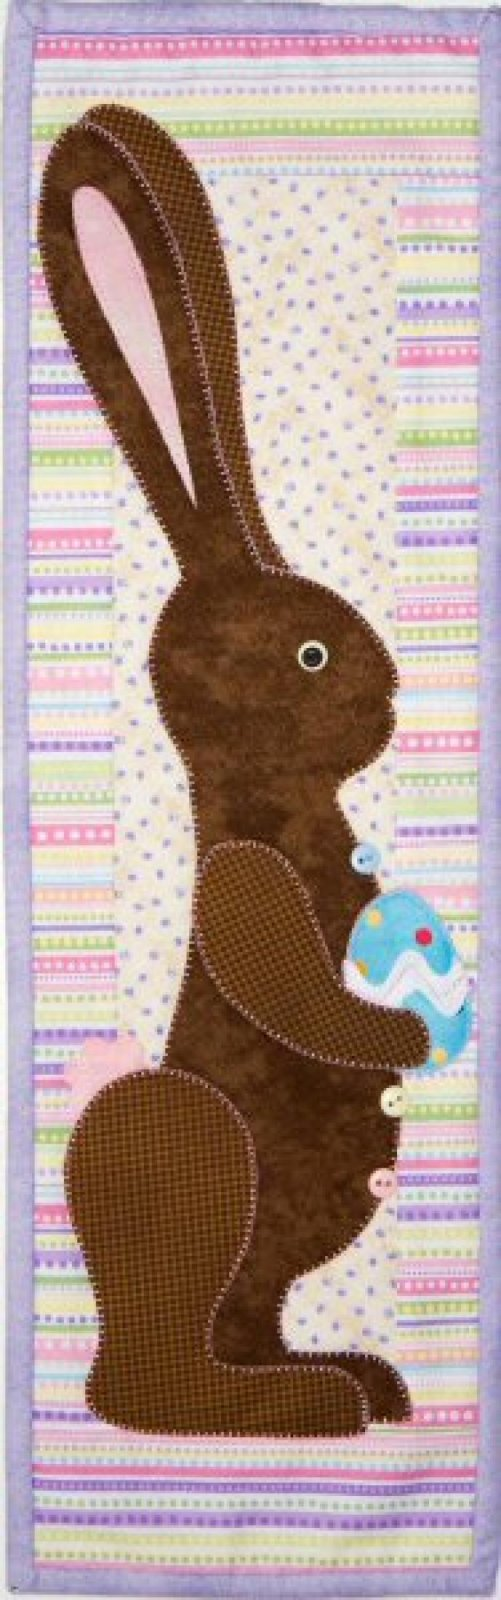 PATCH ABILITIES CHOC BUNNY